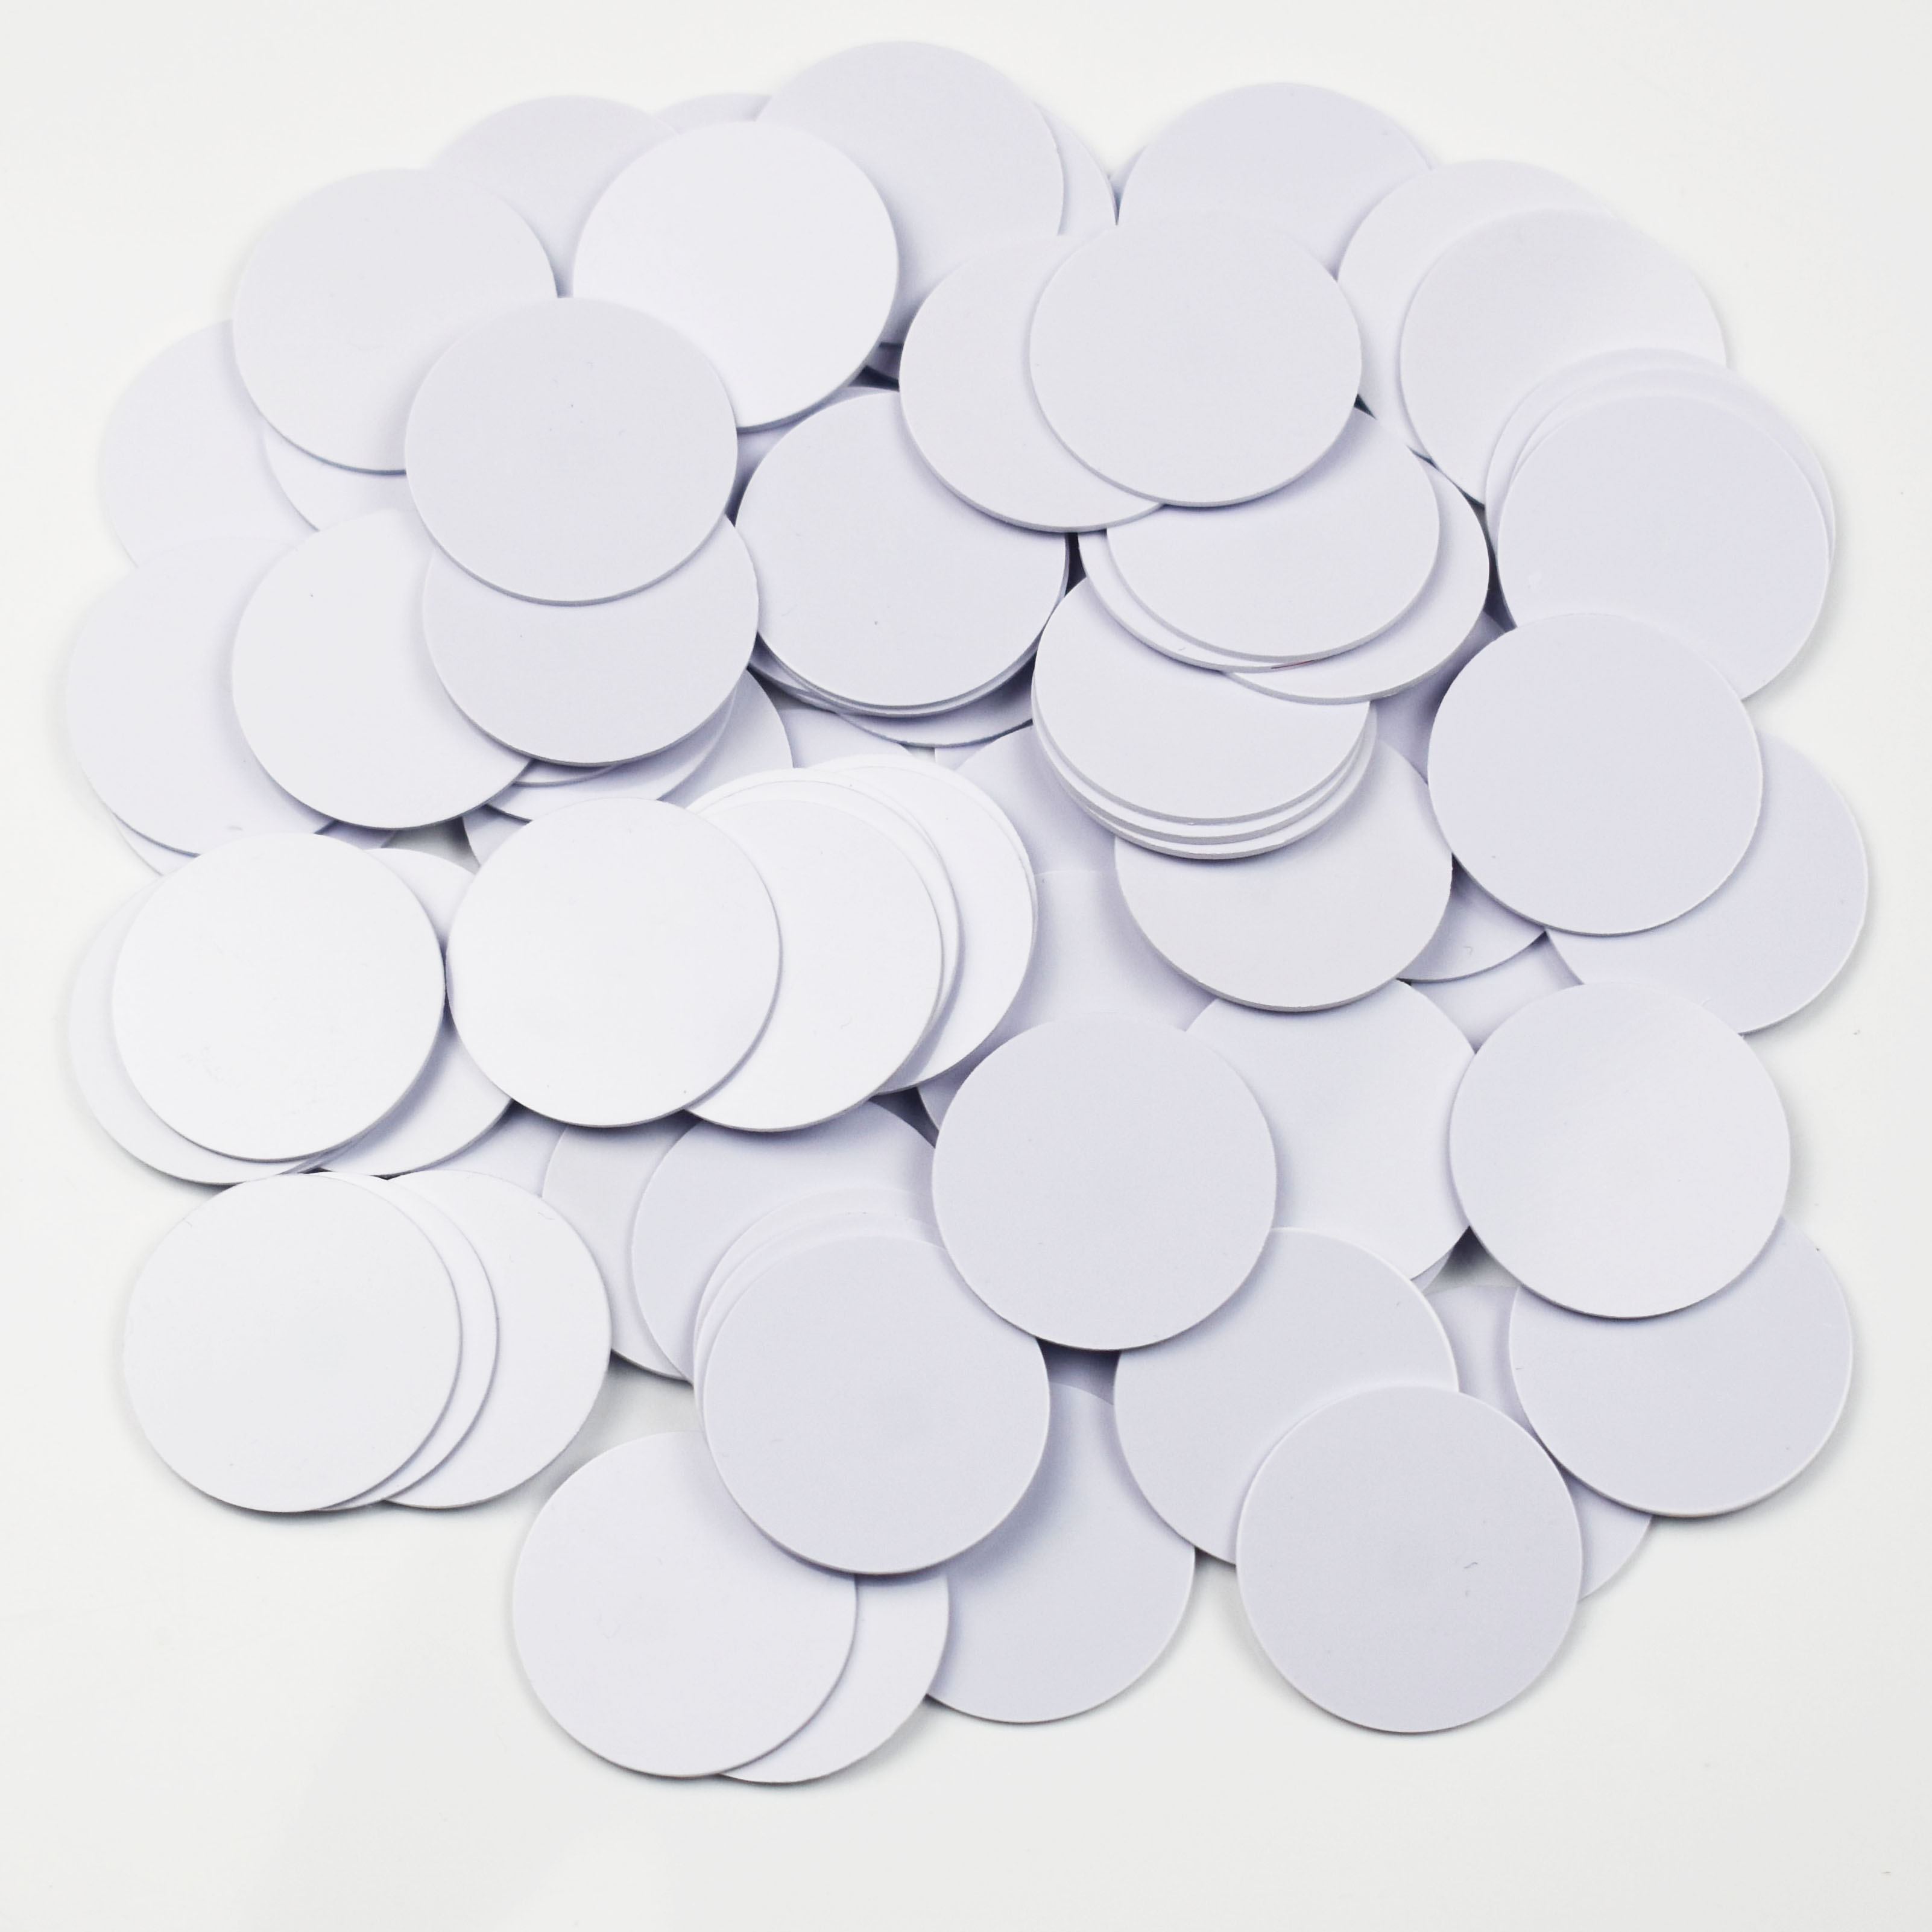 50pcs 100pcs 500pcs 1000pcs NFC Ntag215 Coin TAG Key 13.56MHz NTAG 215 Universal Label RFID Ultralight Tags Labels Phone